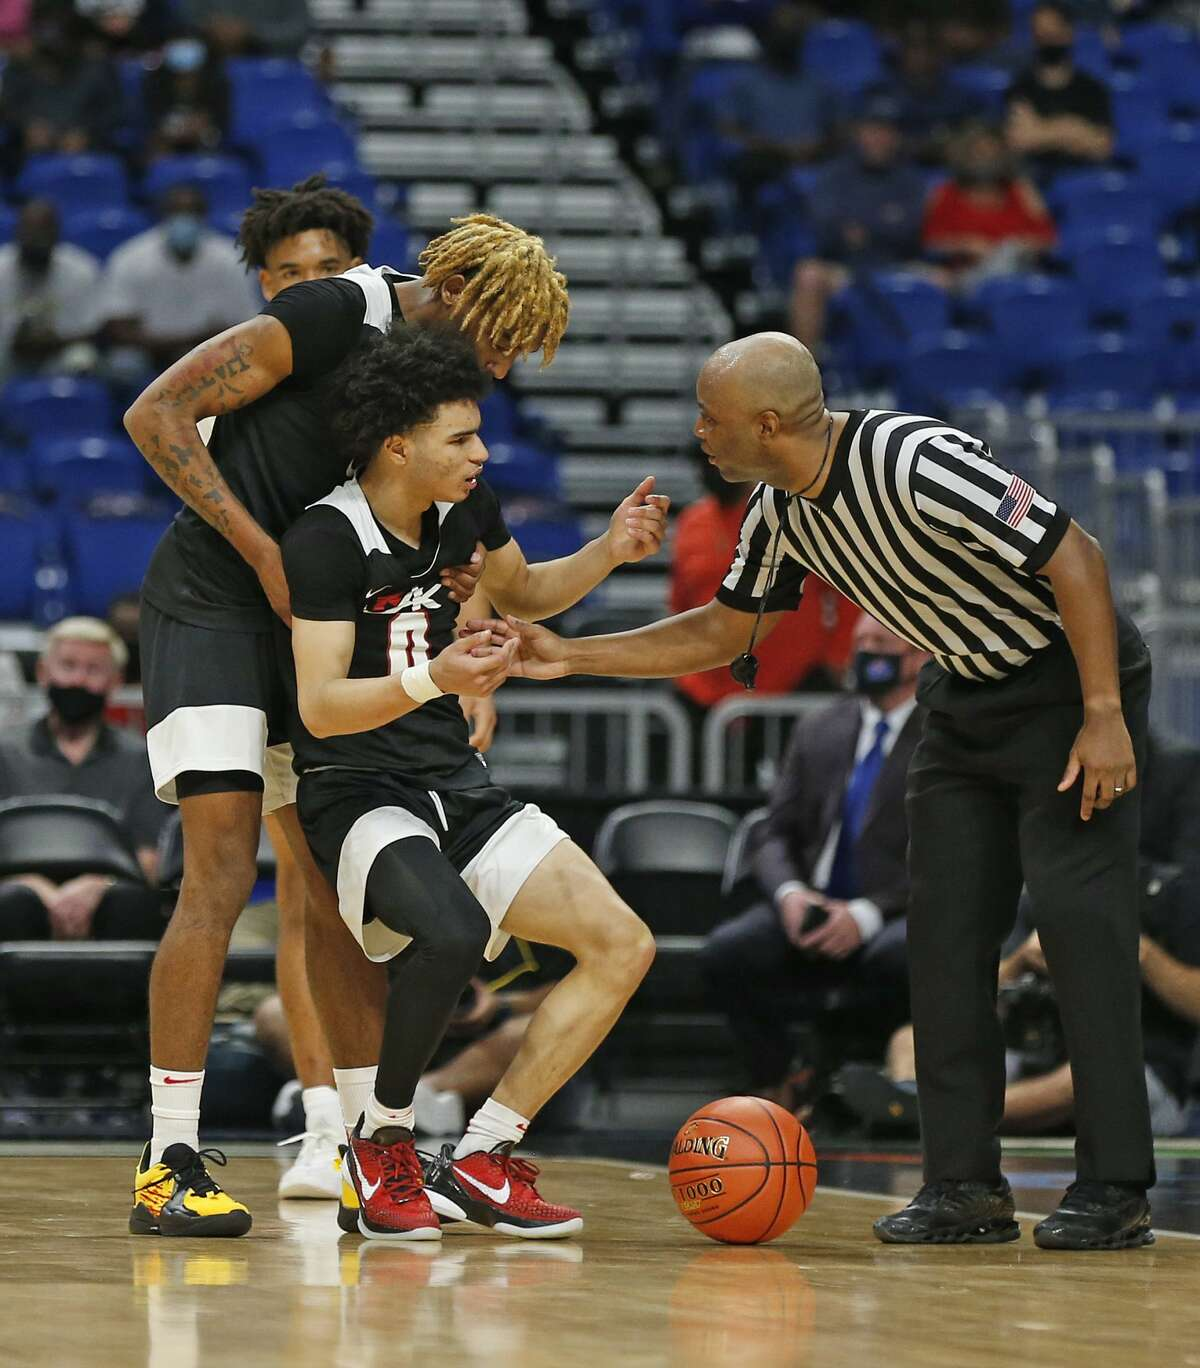 Dallas Kimball Arterio Morris #2 helps up Dallas Kimball Jayden Blair #0 after he tied up a player and thought his team would get possession. UIL boys Class 5A basketball state championship game on Friday, March 12, 2021 at the Alamodome.